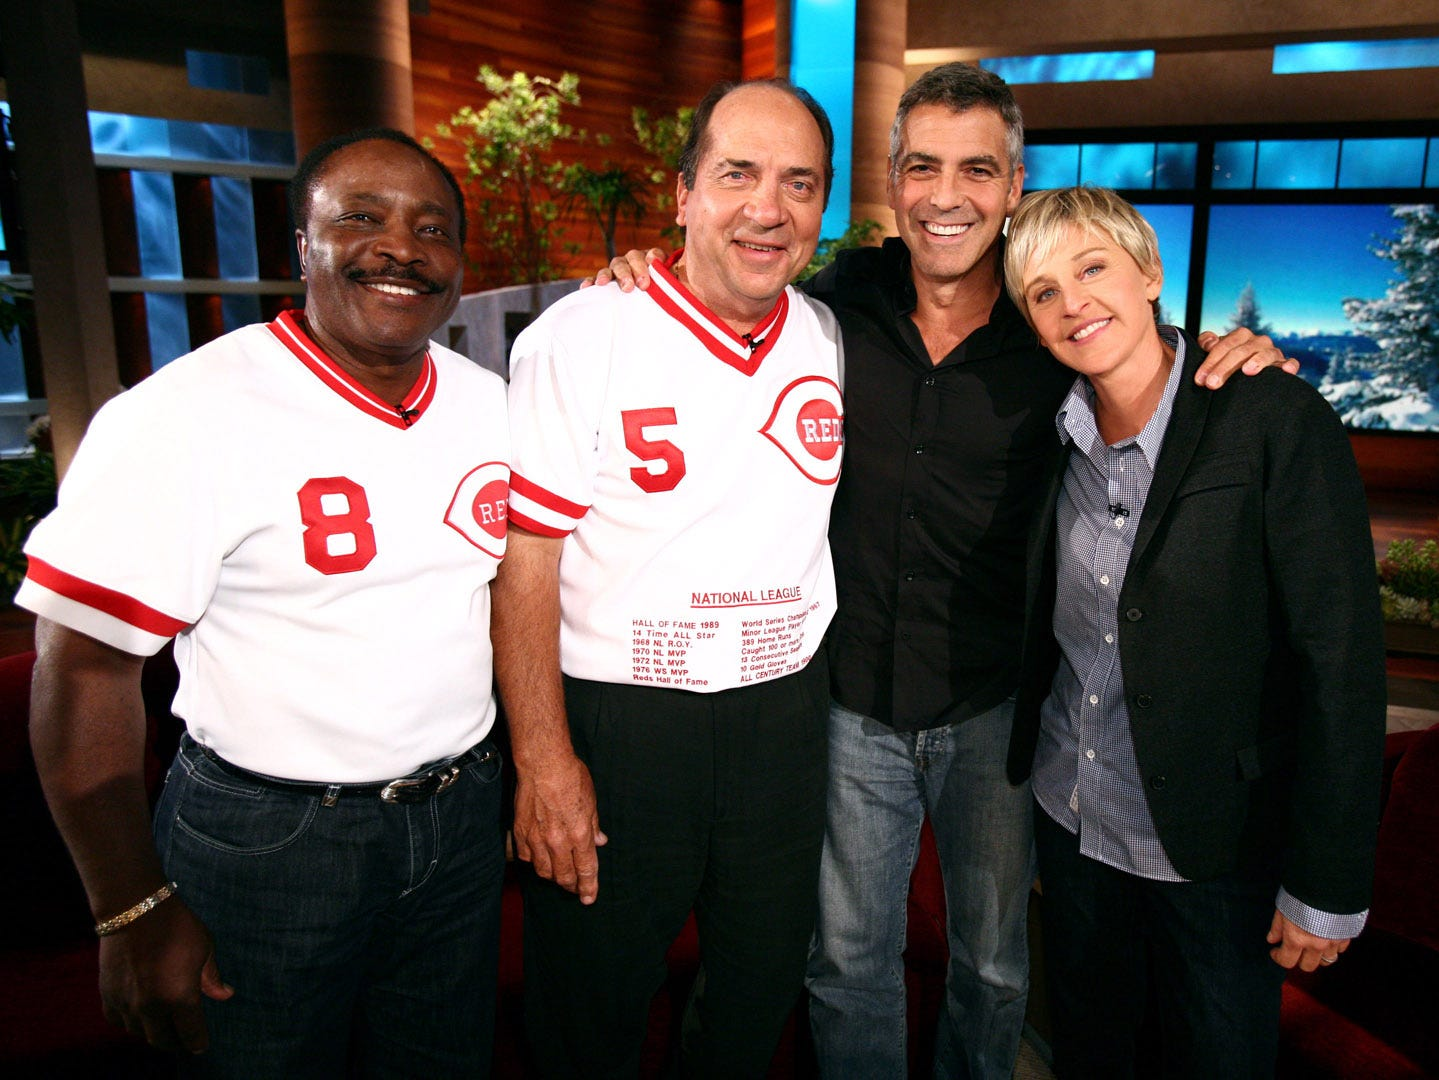 In this photo released by Warner Bros., talk show host Ellen DeGeneres finally lures George Clooney to her show with  the former ÒCincinnati RedÕsÓ Hall of Fame baseball players Johnny Bench and Joe Morgan during a taping of ÒThe Ellen DeGeneres ShowÓ on the Warner Bros. lot in Burbank, Ca on Thursday, January 15th, 2009.  This episode of ÒThe Ellen DeGeneres ShowÓ airs on Monday, January 19th.  (Michael Rozman/Warner Bros.)